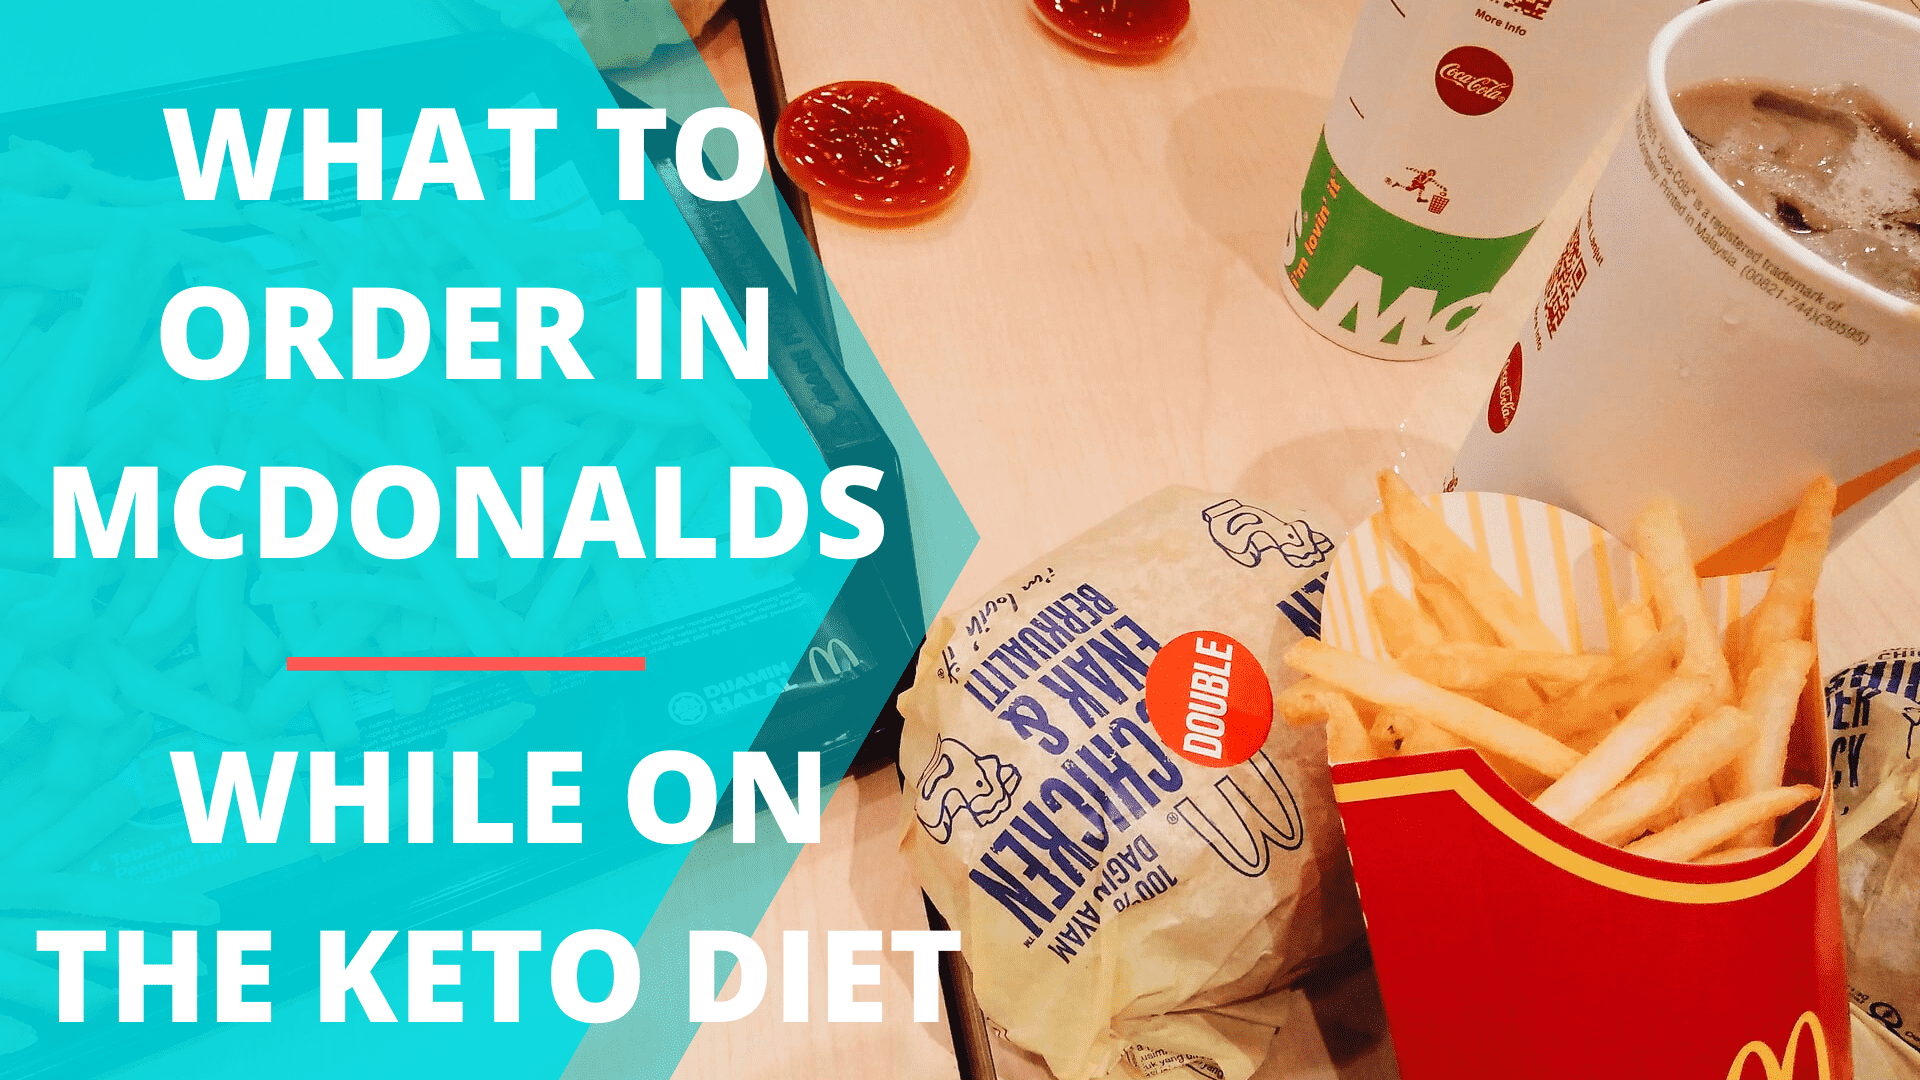 What To Order In Mcdonald's While On The Keto Diet